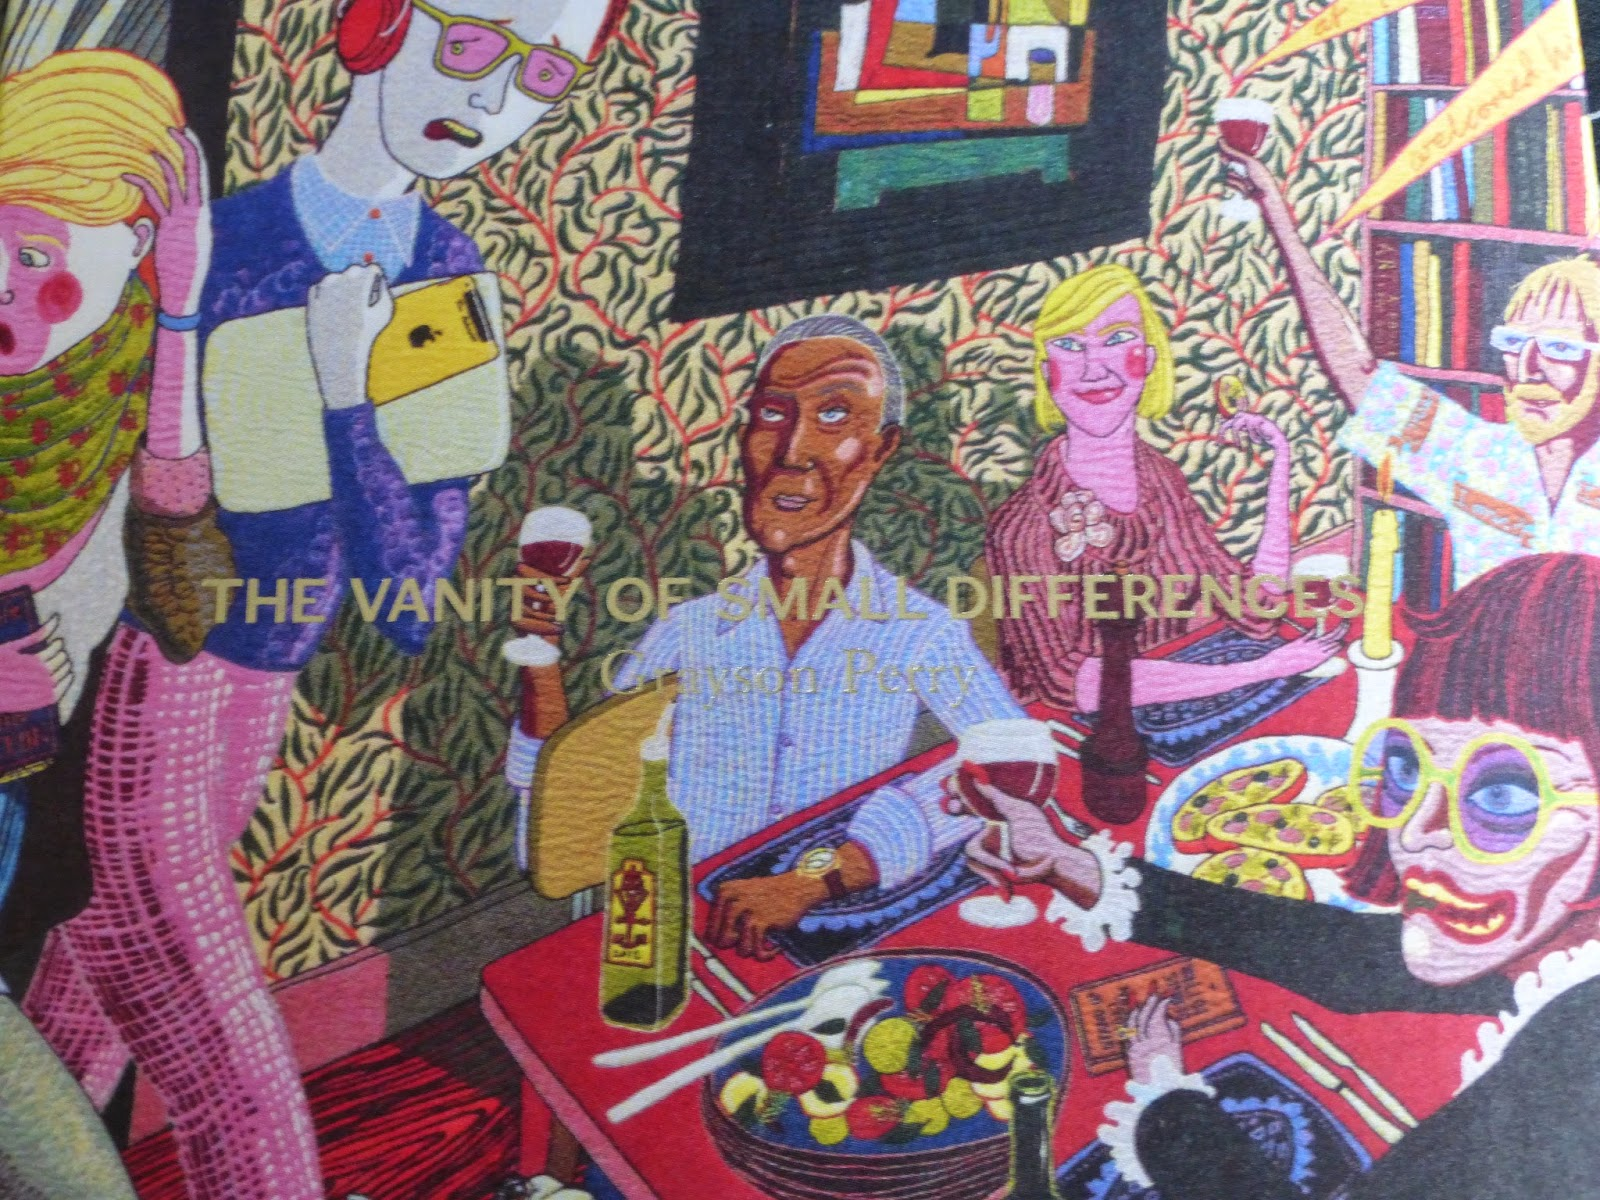 Grayson Perry image from exhibition book cover